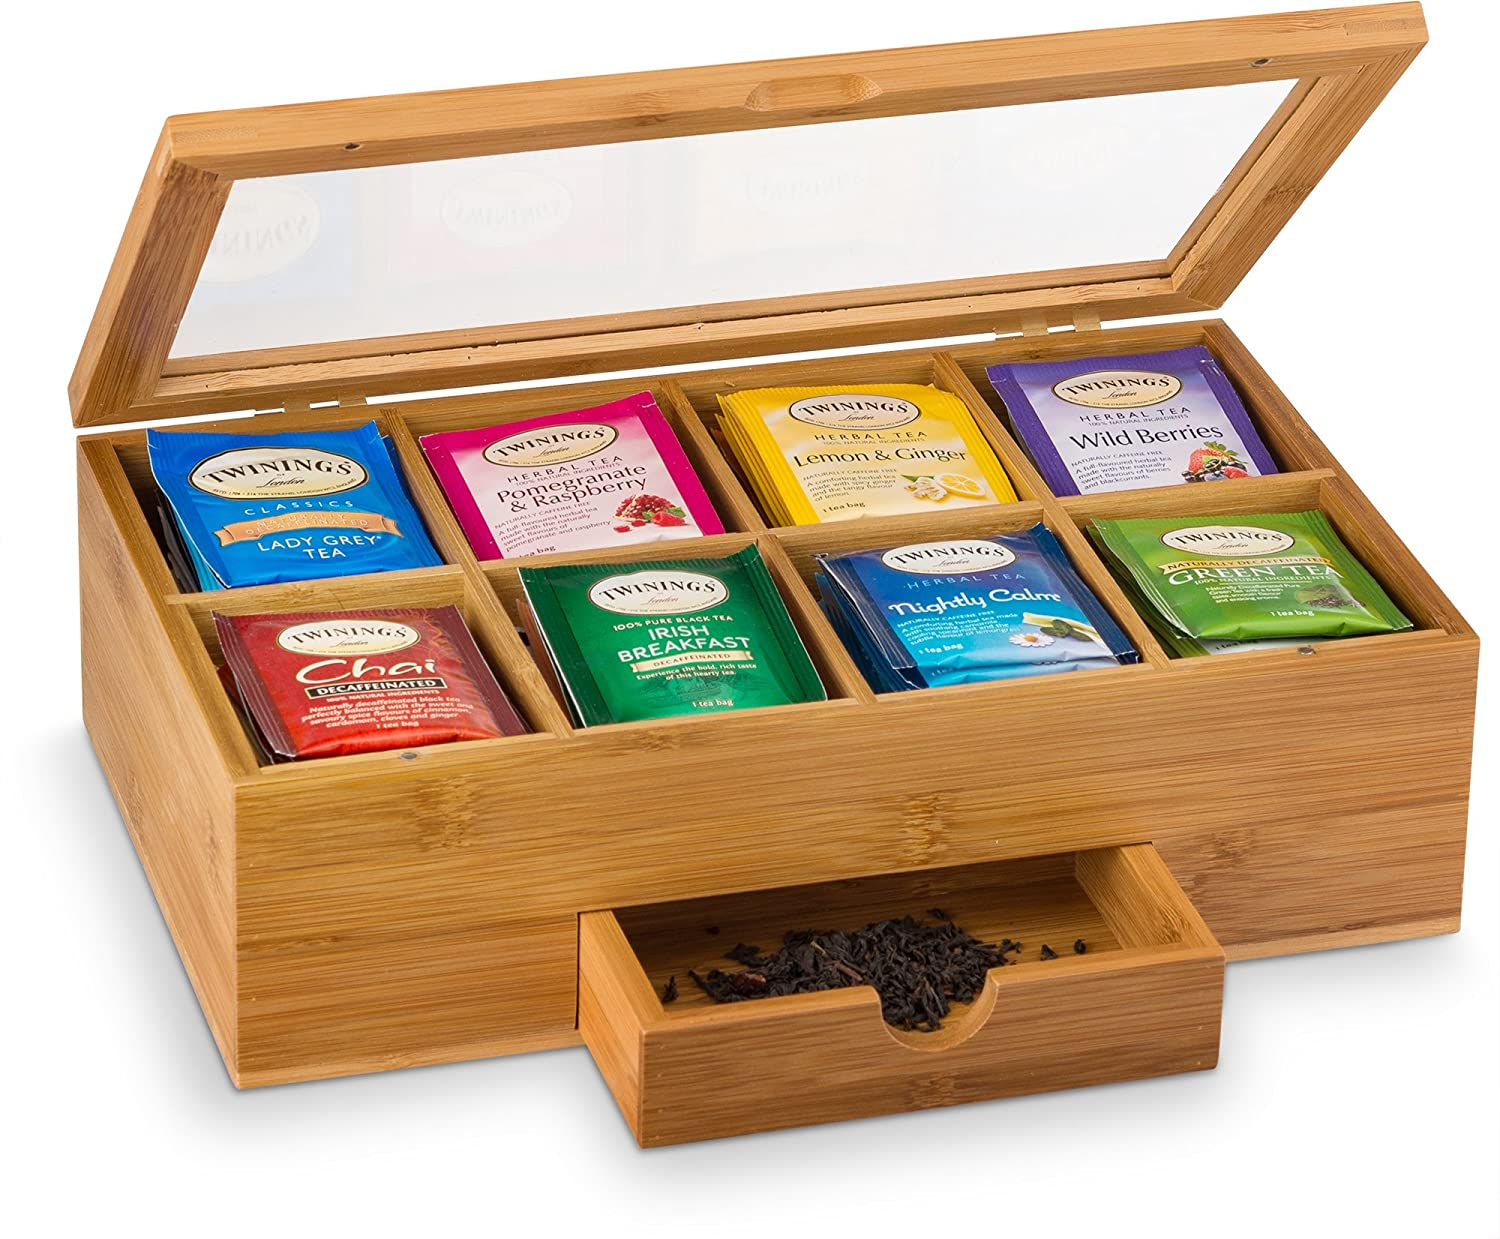 Tea Organizer Bamboo Tea Box with Small Drawer 100% Natural Bamboo Tea Chest - Great Gift Idea - By Bambusi Bambüsi BAM-TBWD